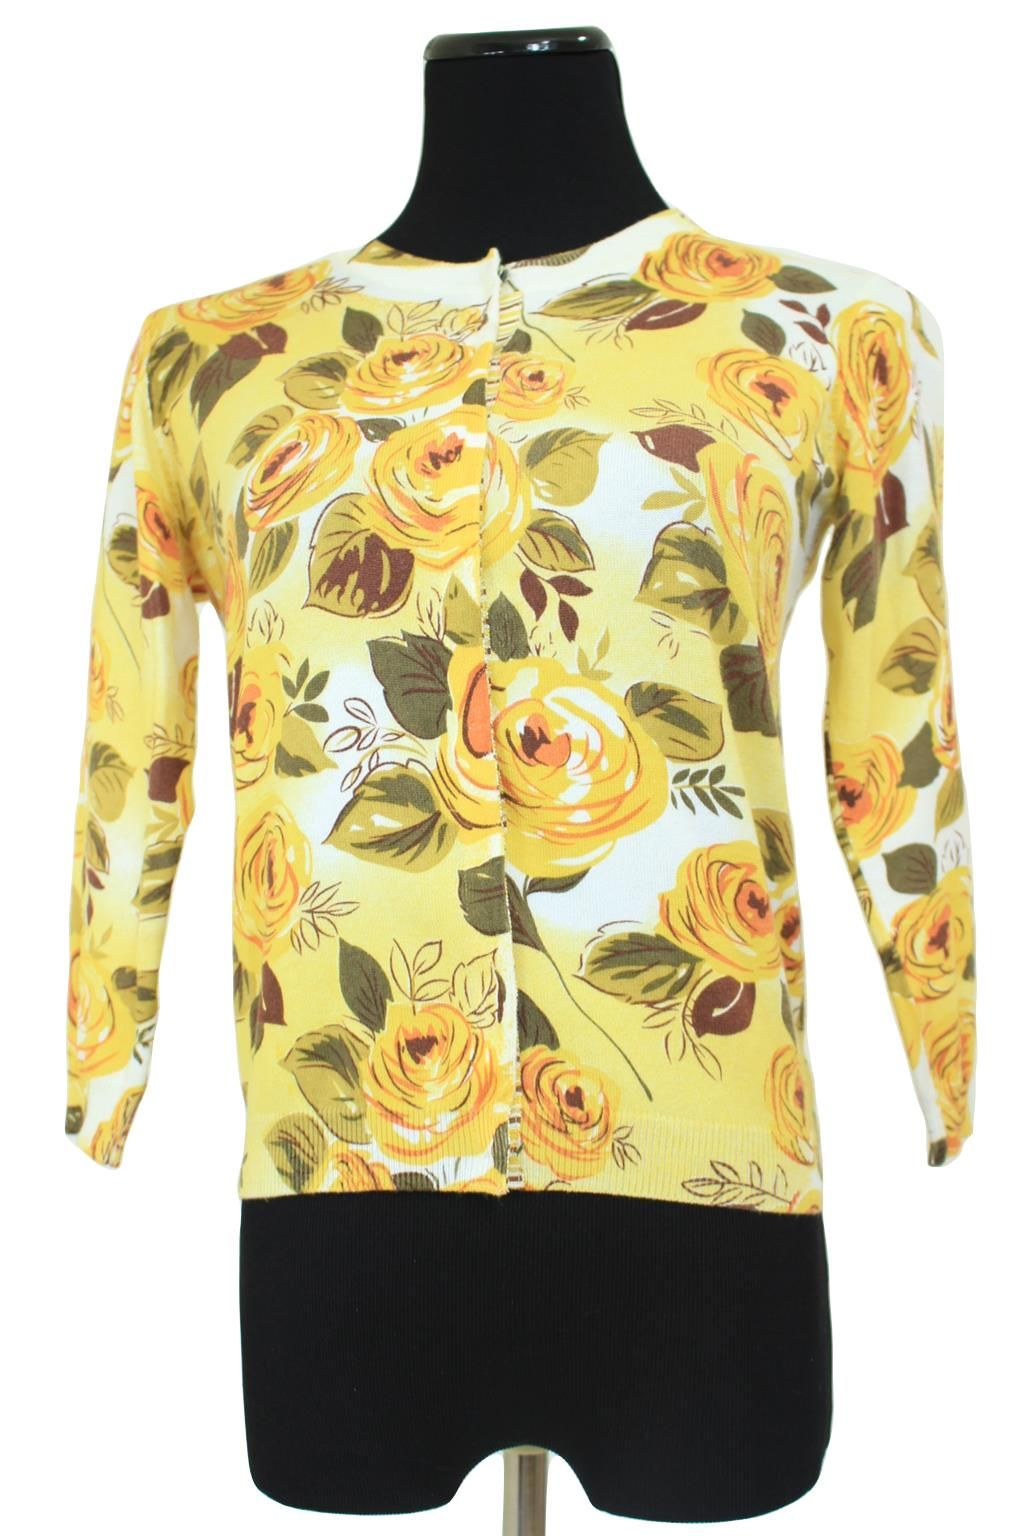 CAbi 465 Yellow Floral Snap Front Jo Cardigan Sweater Size S